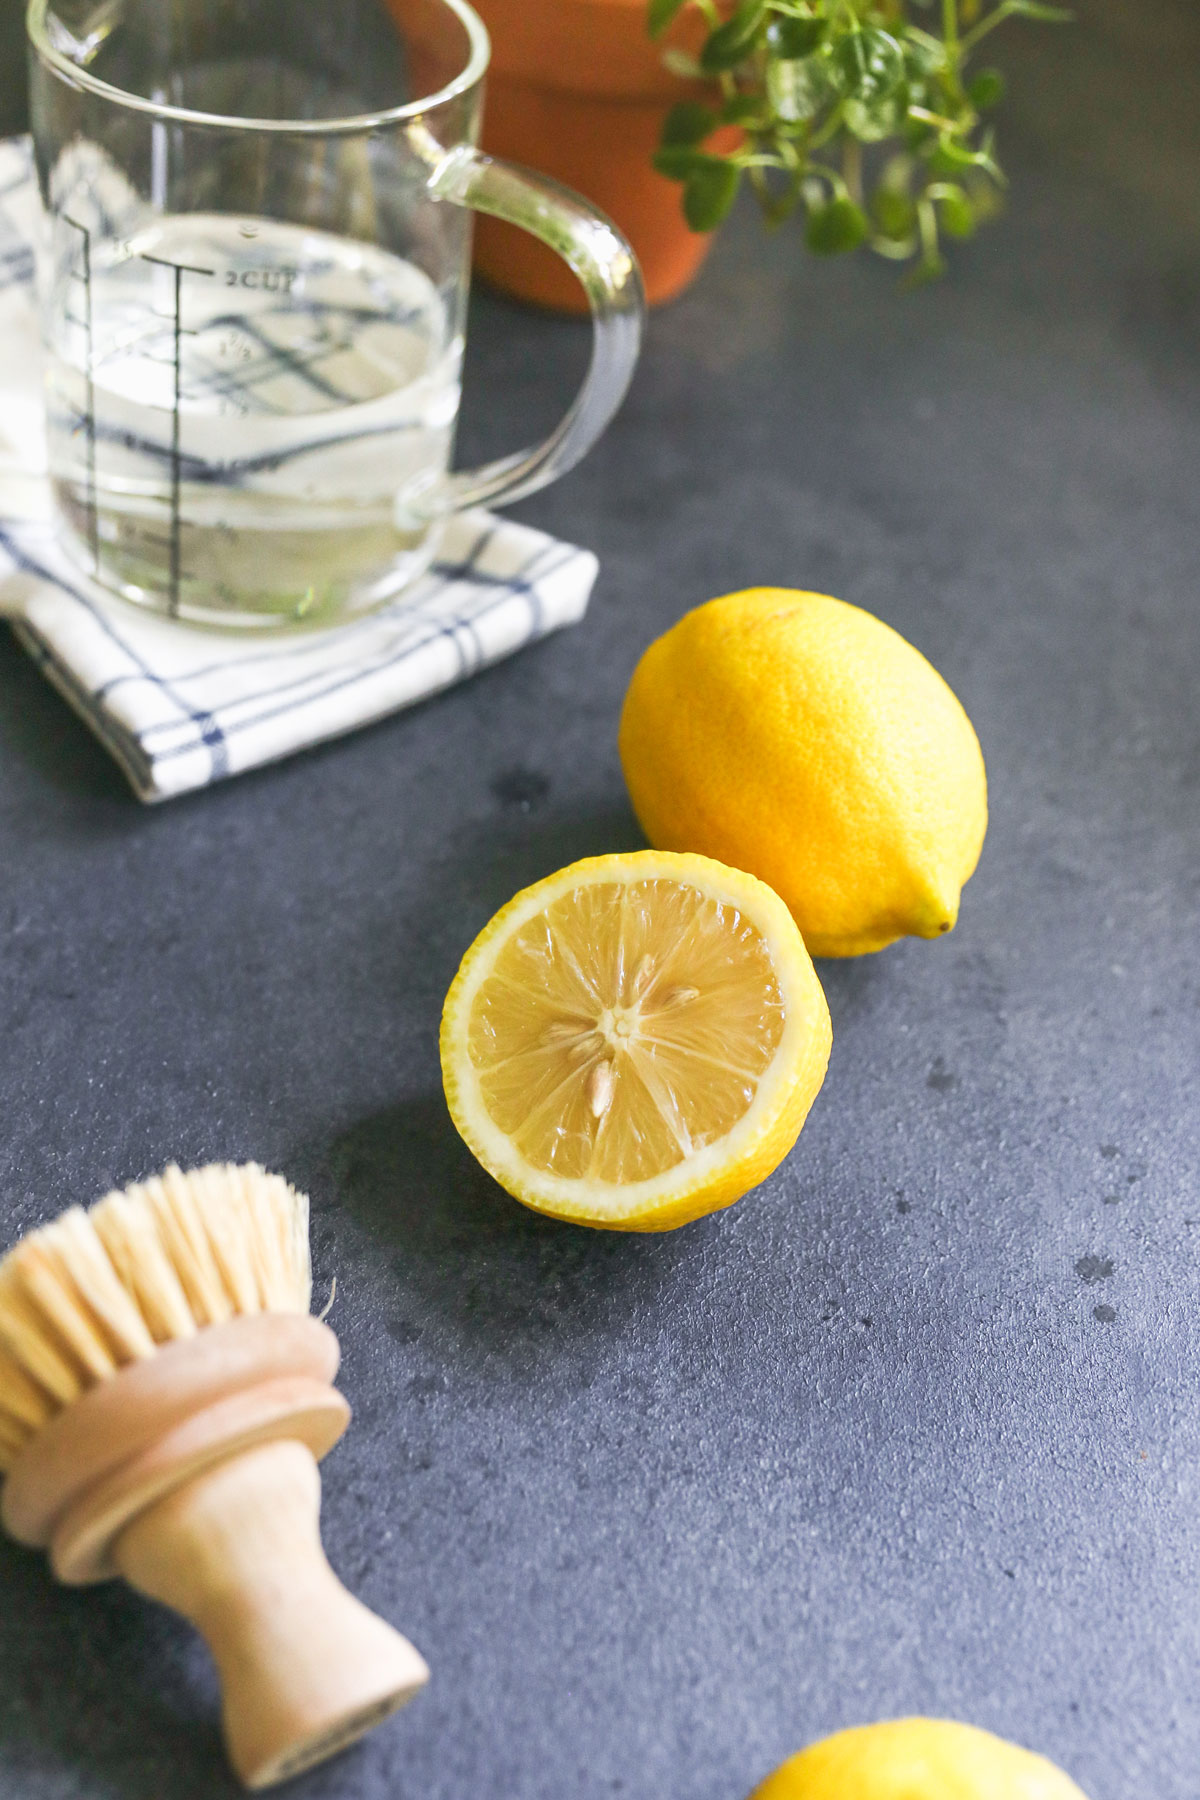 lemon for microwave cleaning